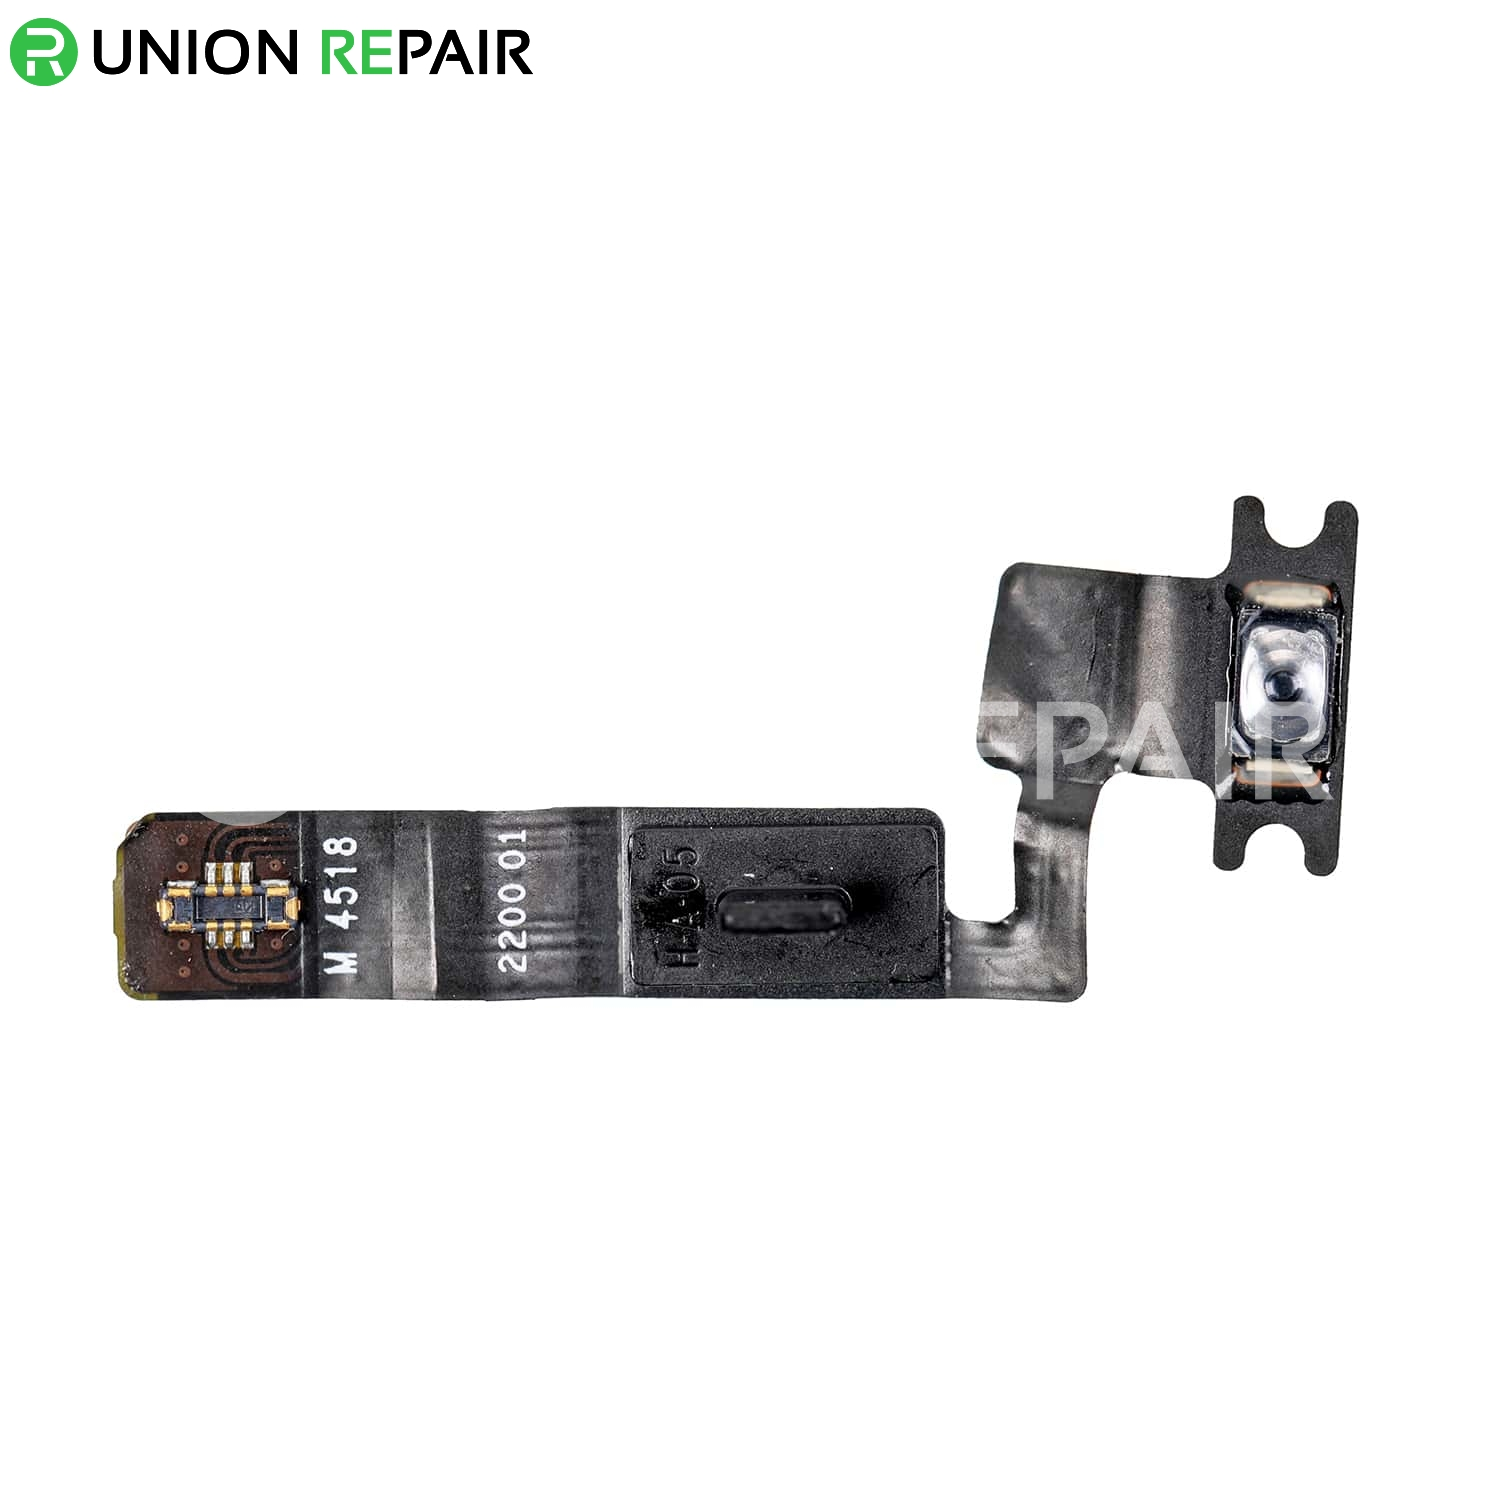 Replacement for iPad Pro 10.5 2nd Gen Power Button Flex Cable